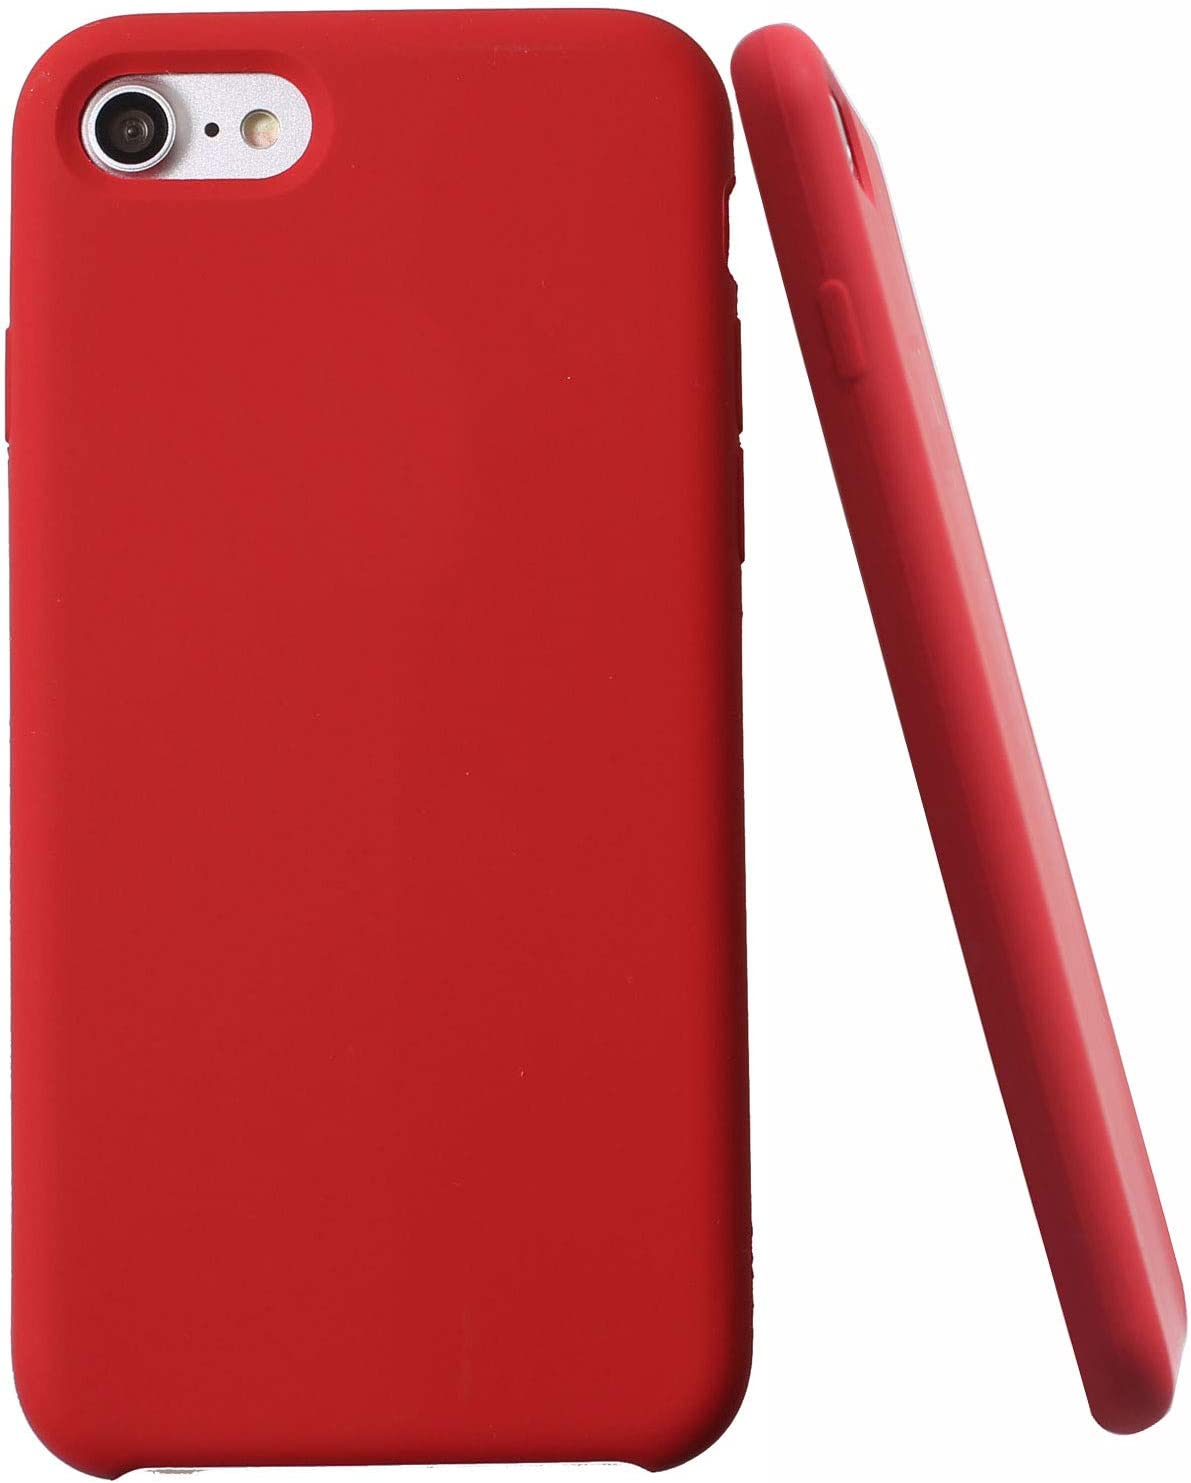 Soft Liquid Silicone iPhone 8 Plus Cover Case Inner Soft Microfiber Cloth Lining Cushion for iPhone 7 Plus/for iPhone 8 Plus (Red)